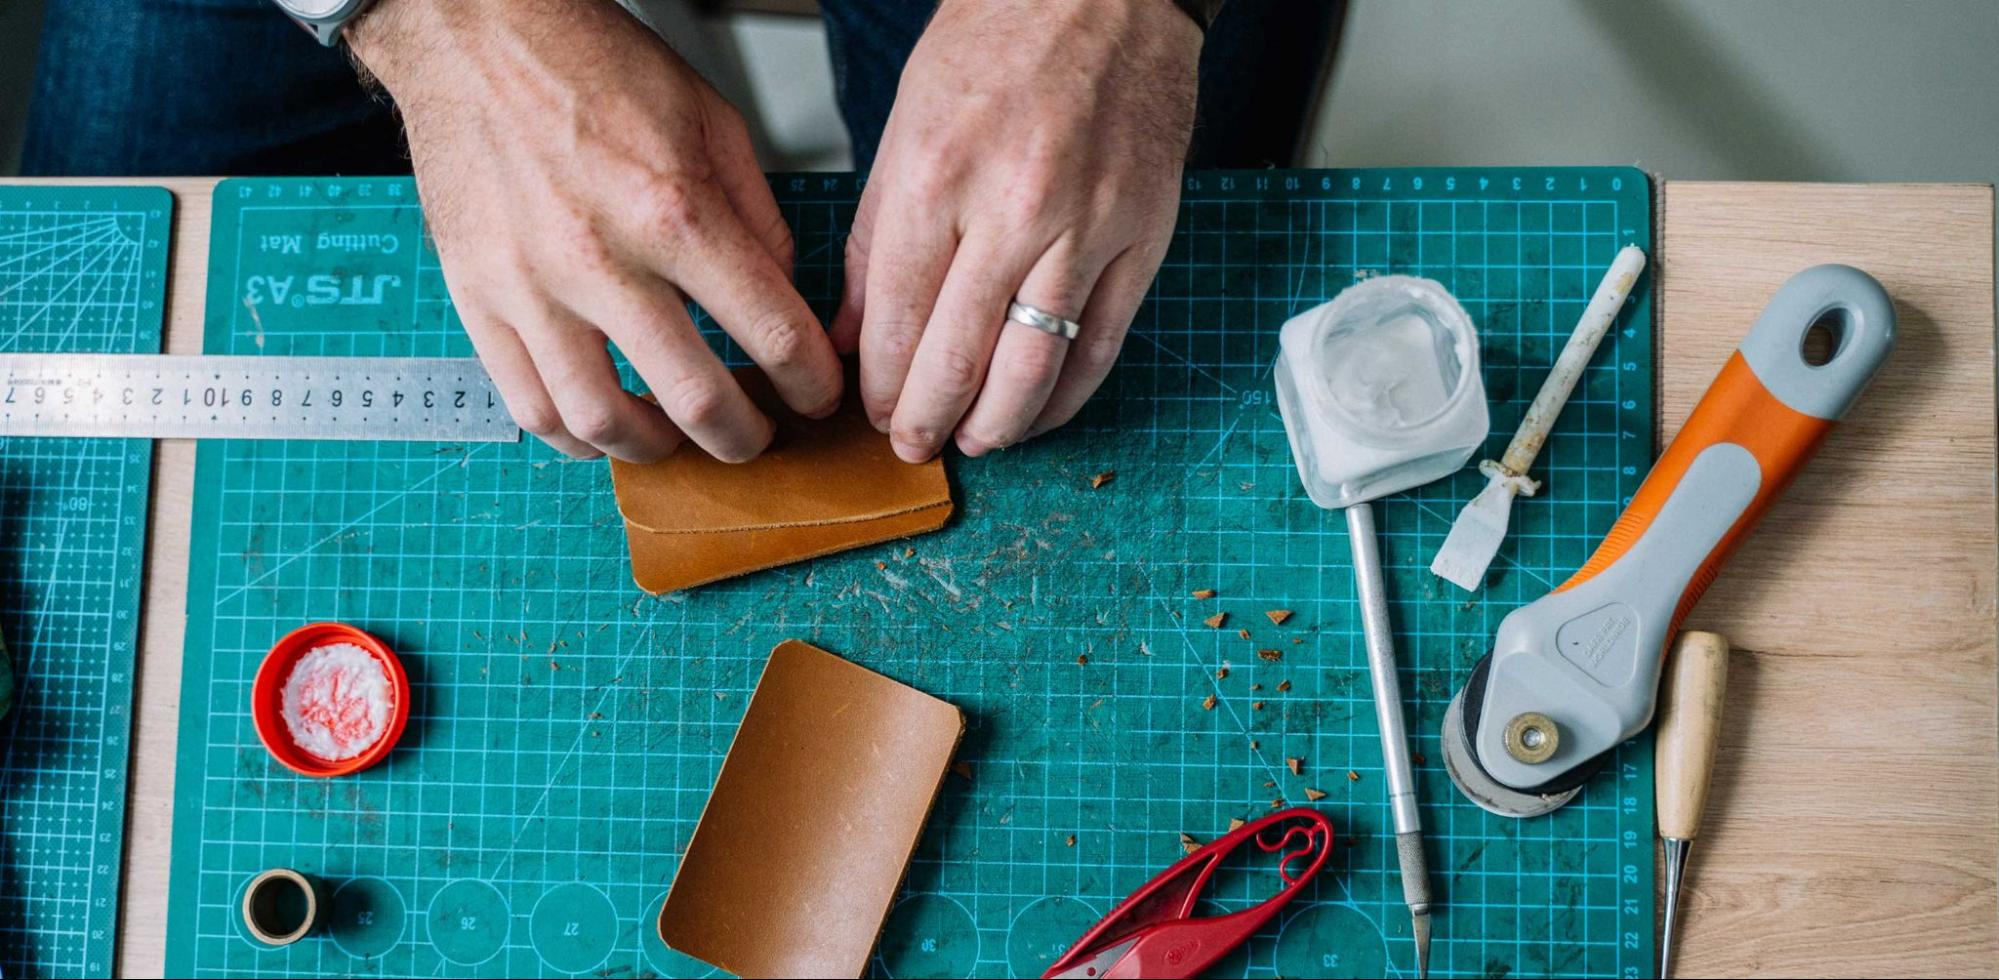 Best Glue for Leather Jackets, Shoes, Bags and Furniture